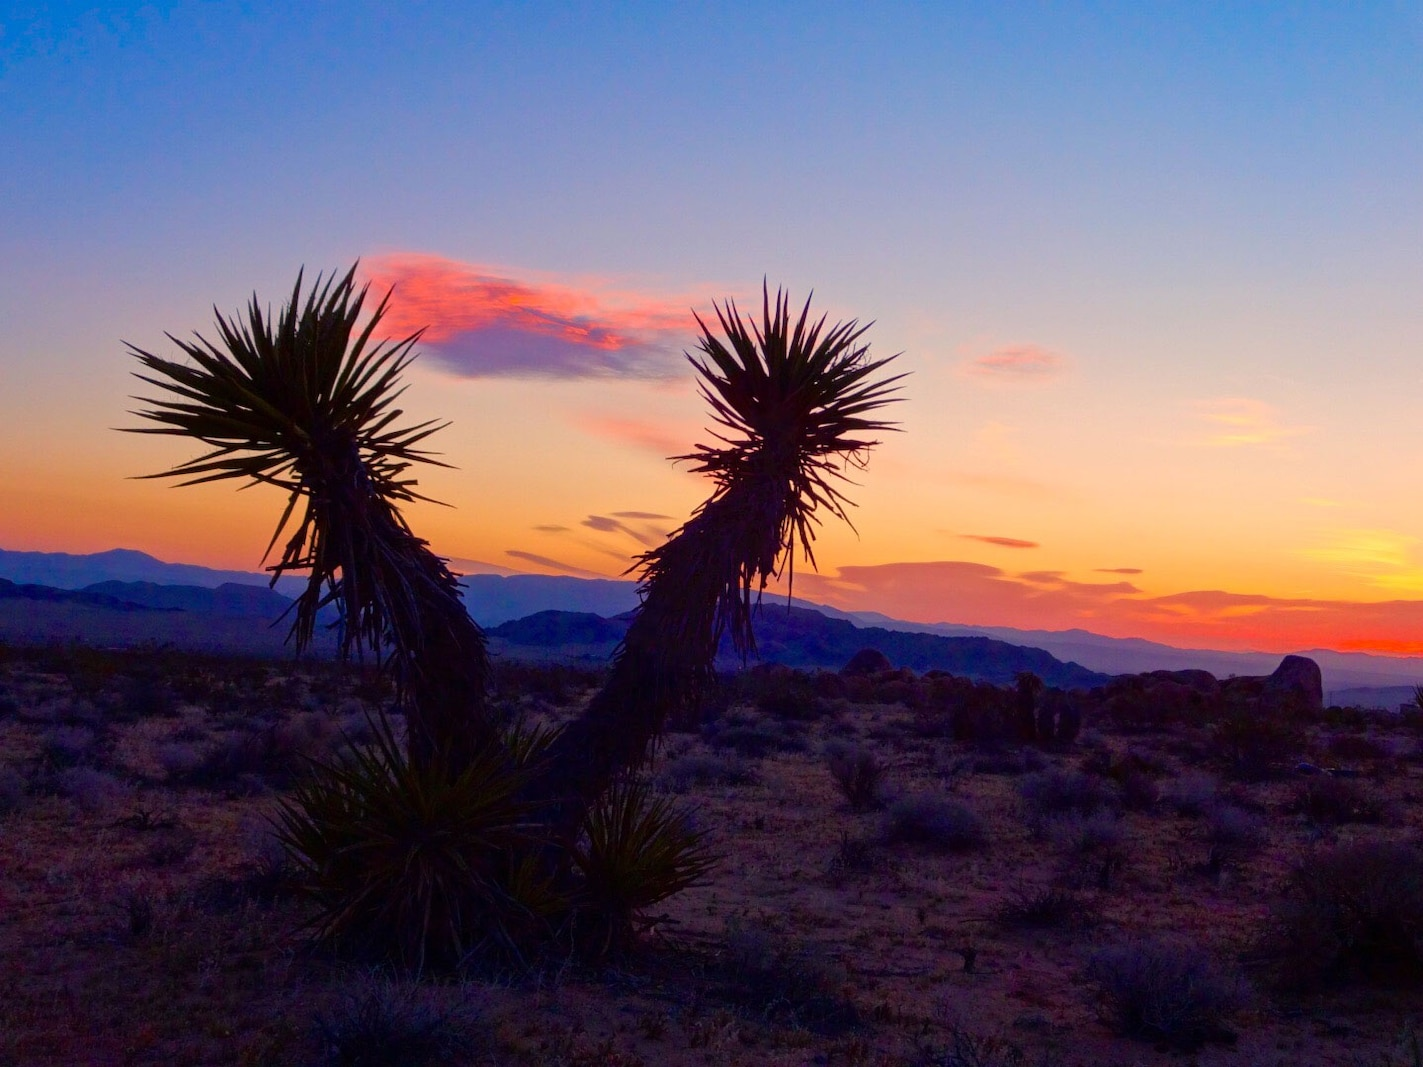 Desert skies are filled with shades of pink and orange during sunset.